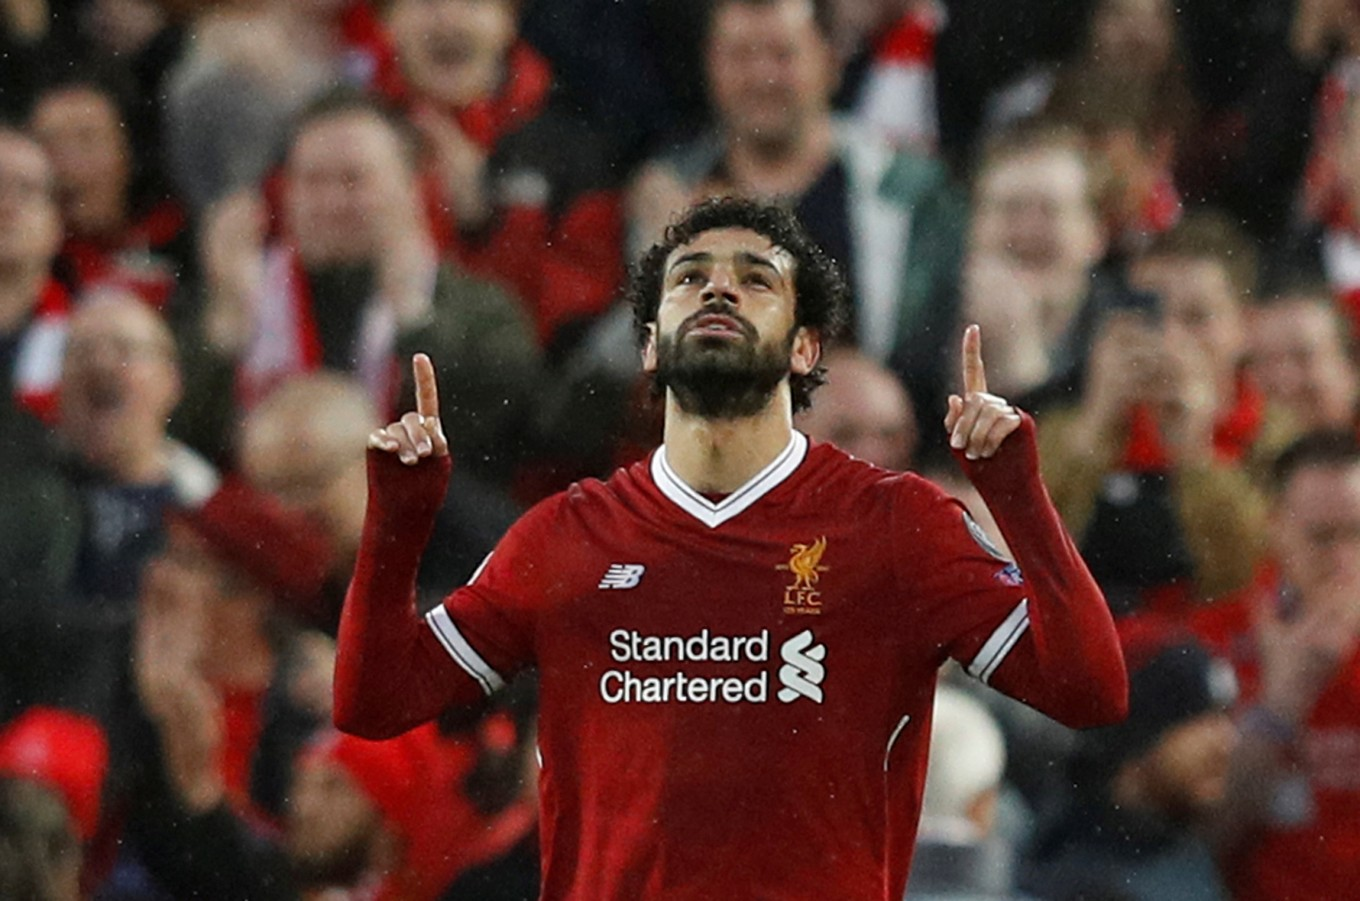 Soccer star Mo Salah gets level-headed support from Indonesian fans